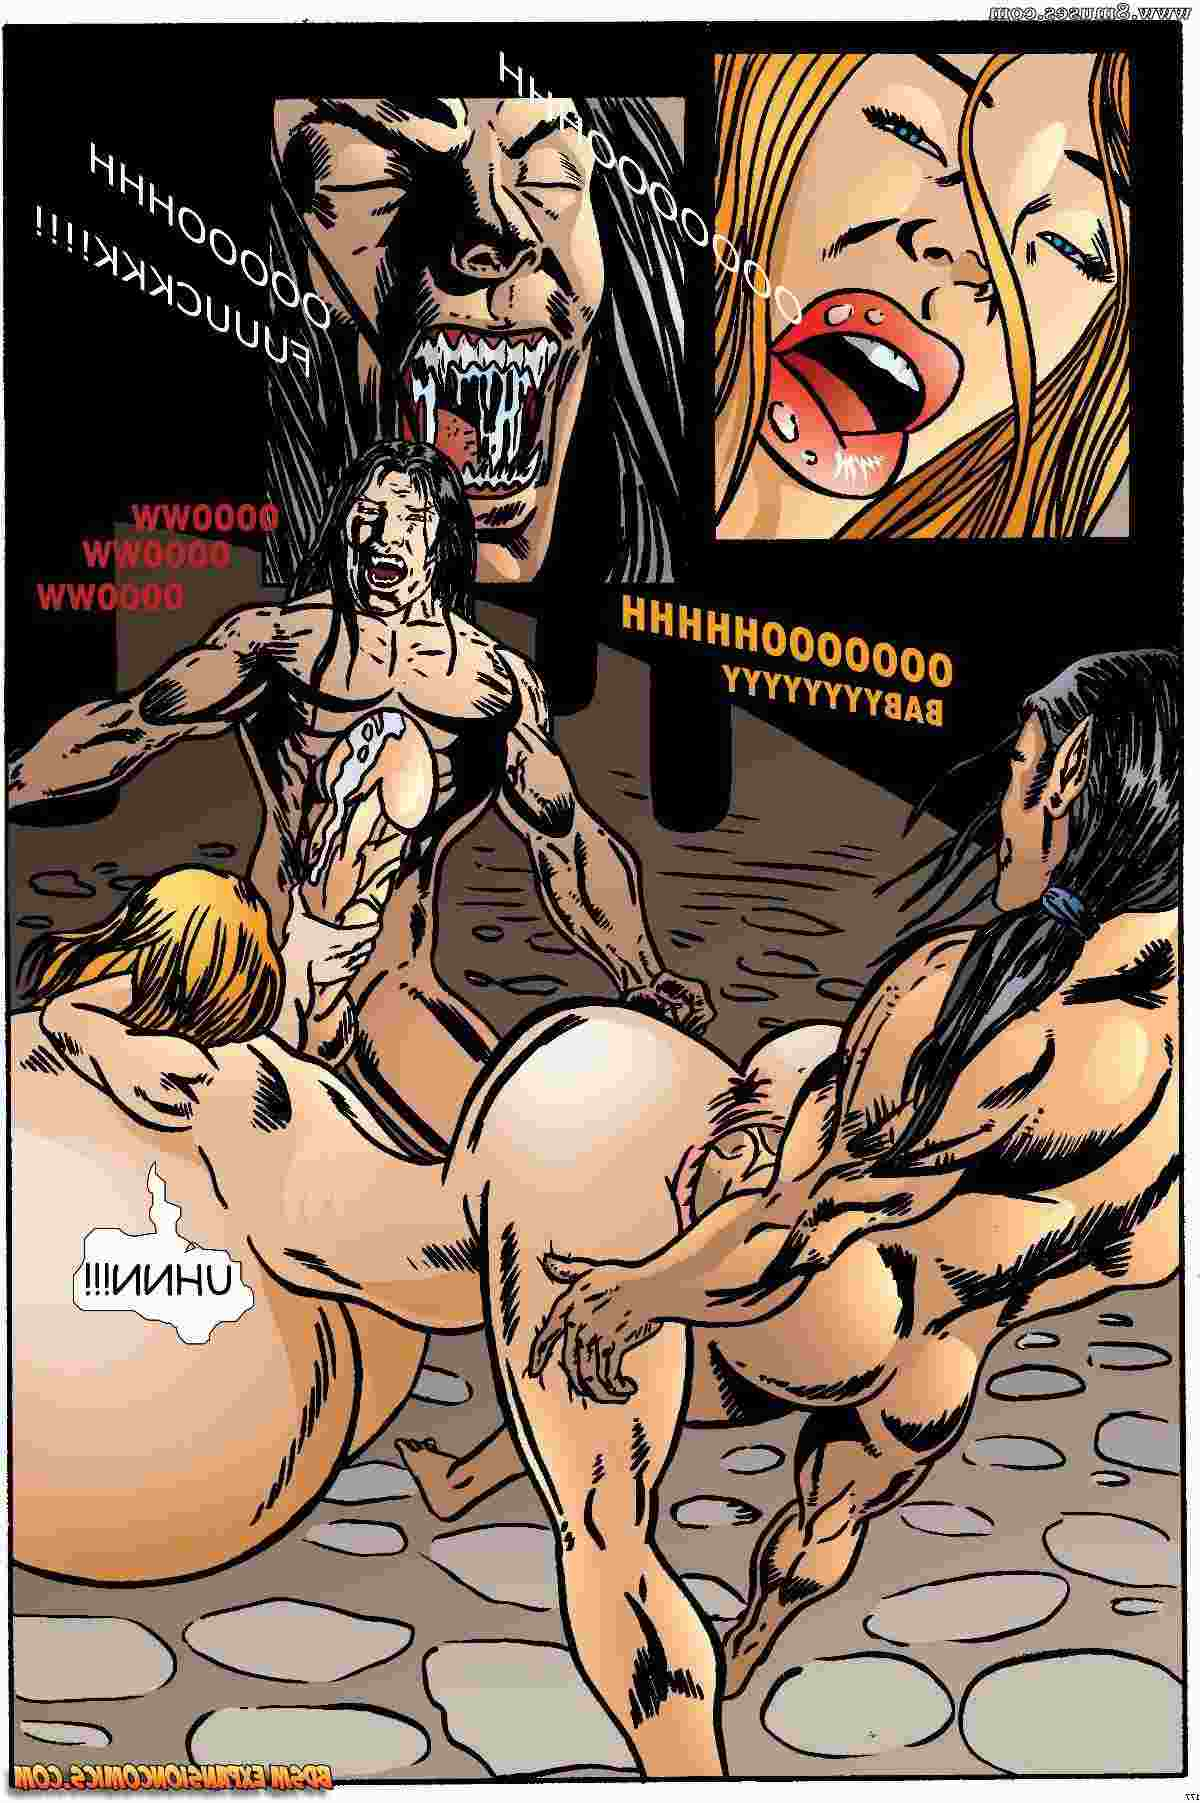 Expansion-Comics/Three-Vampires Three_Vampires__8muses_-_Sex_and_Porn_Comics_5.jpg